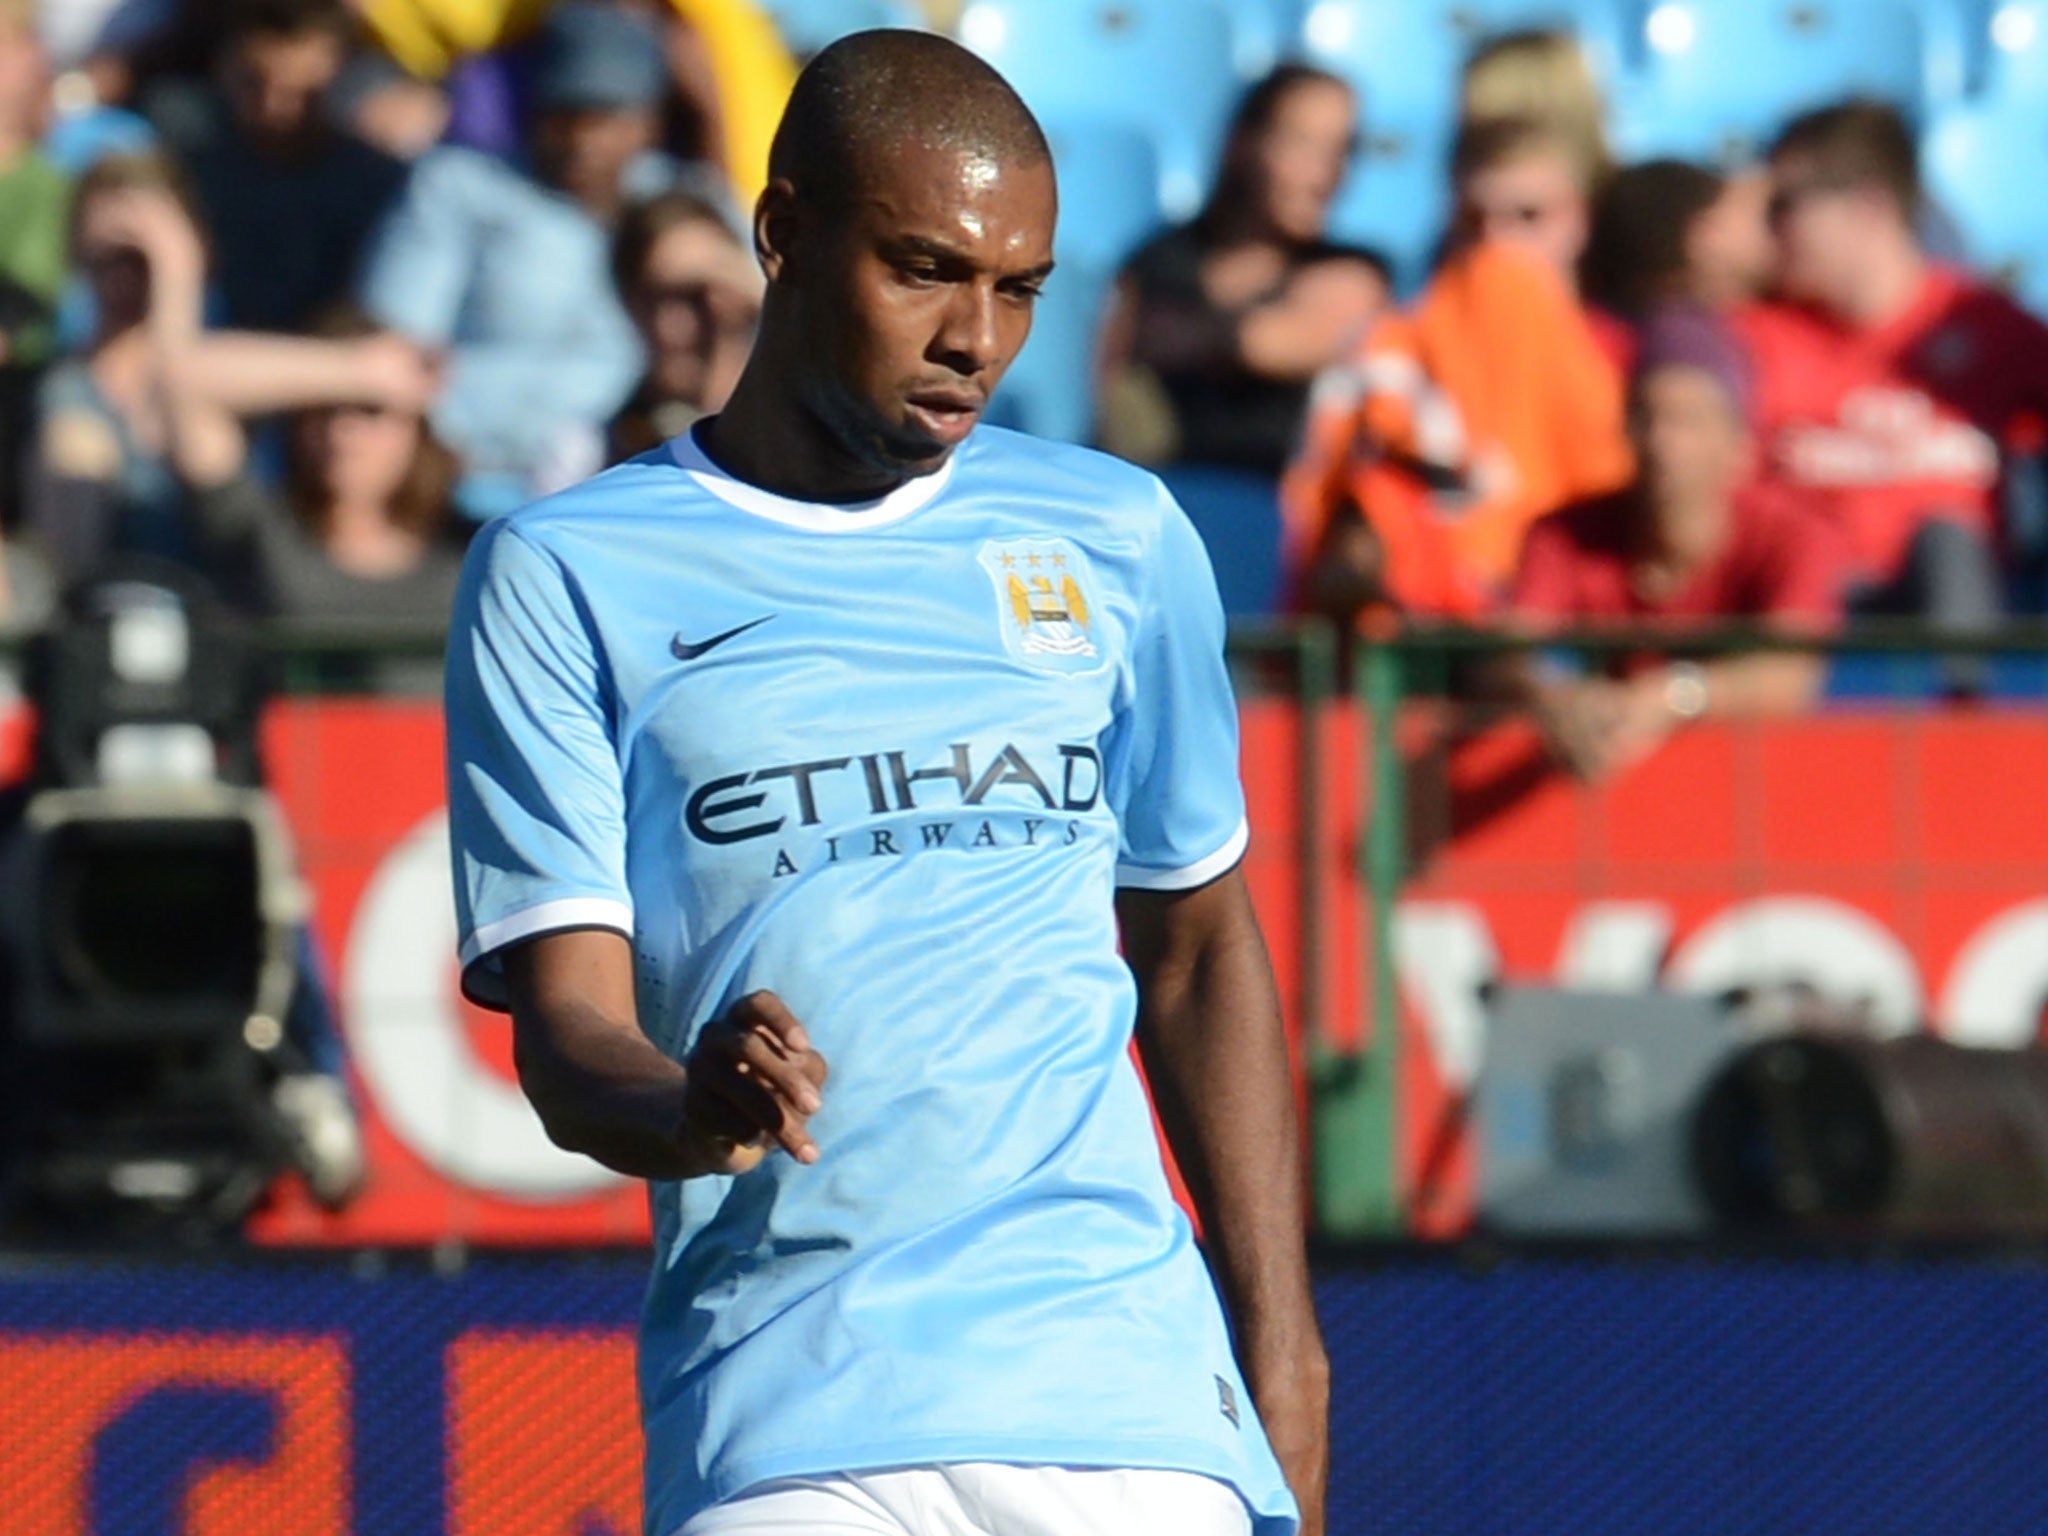 Fernandinho The new boy from Brazil